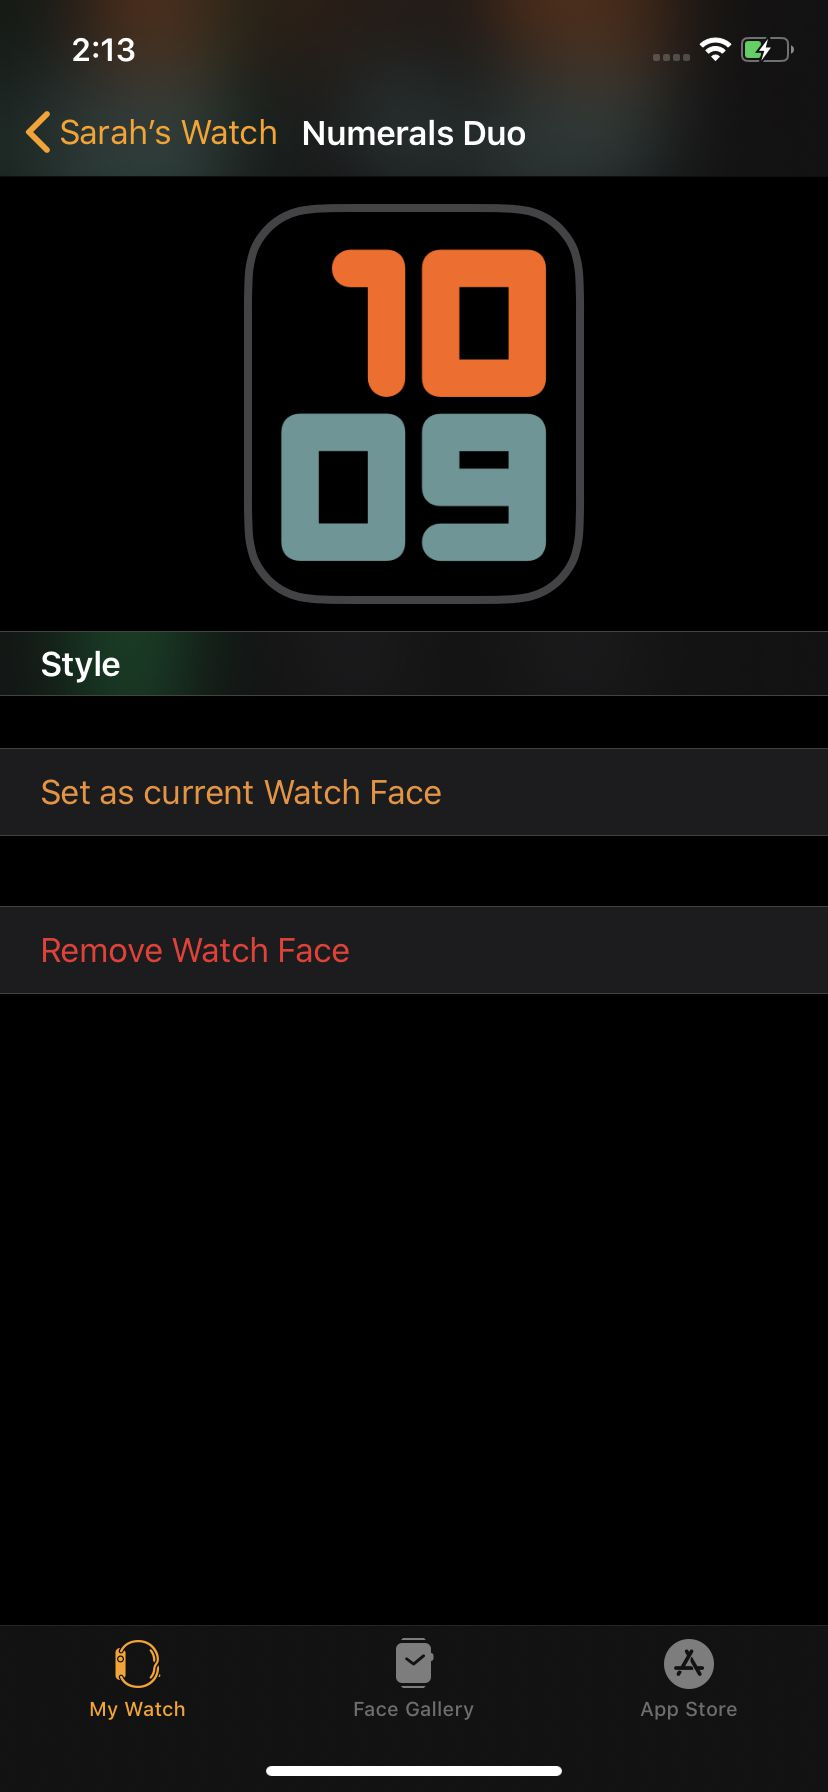 https://igetintopc.org/wp-content/uploads/2019/10/how-to-add-and-change-watchfaces-on-your-apple-watch.com